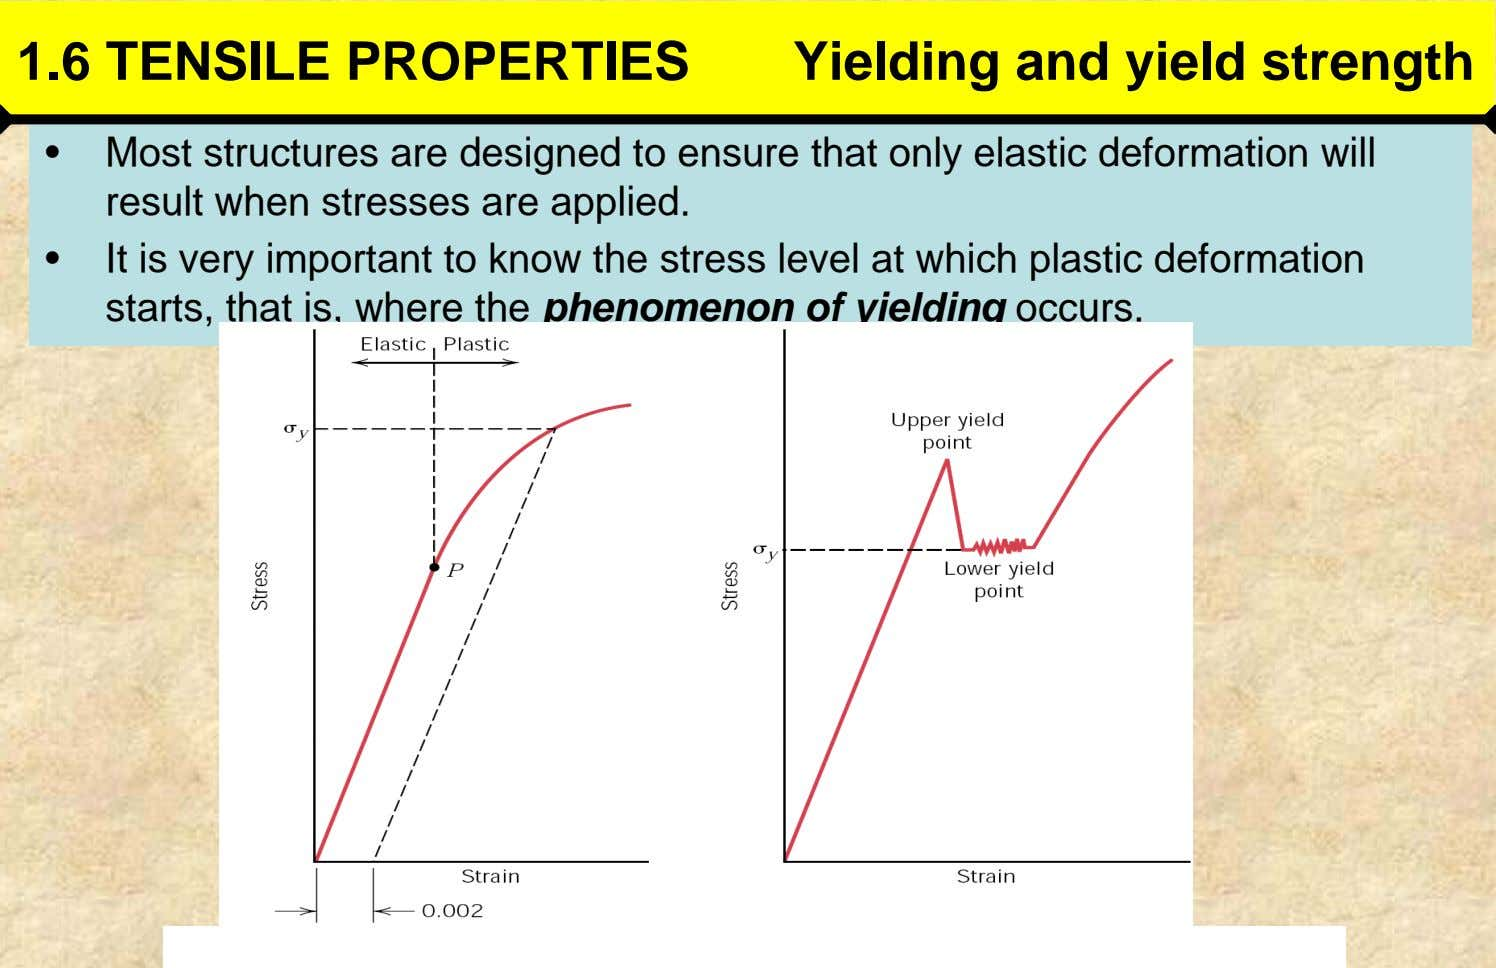 1.6 TENSILE PROPERTIES Yielding and yield strength • Most structures are designed to ensure that